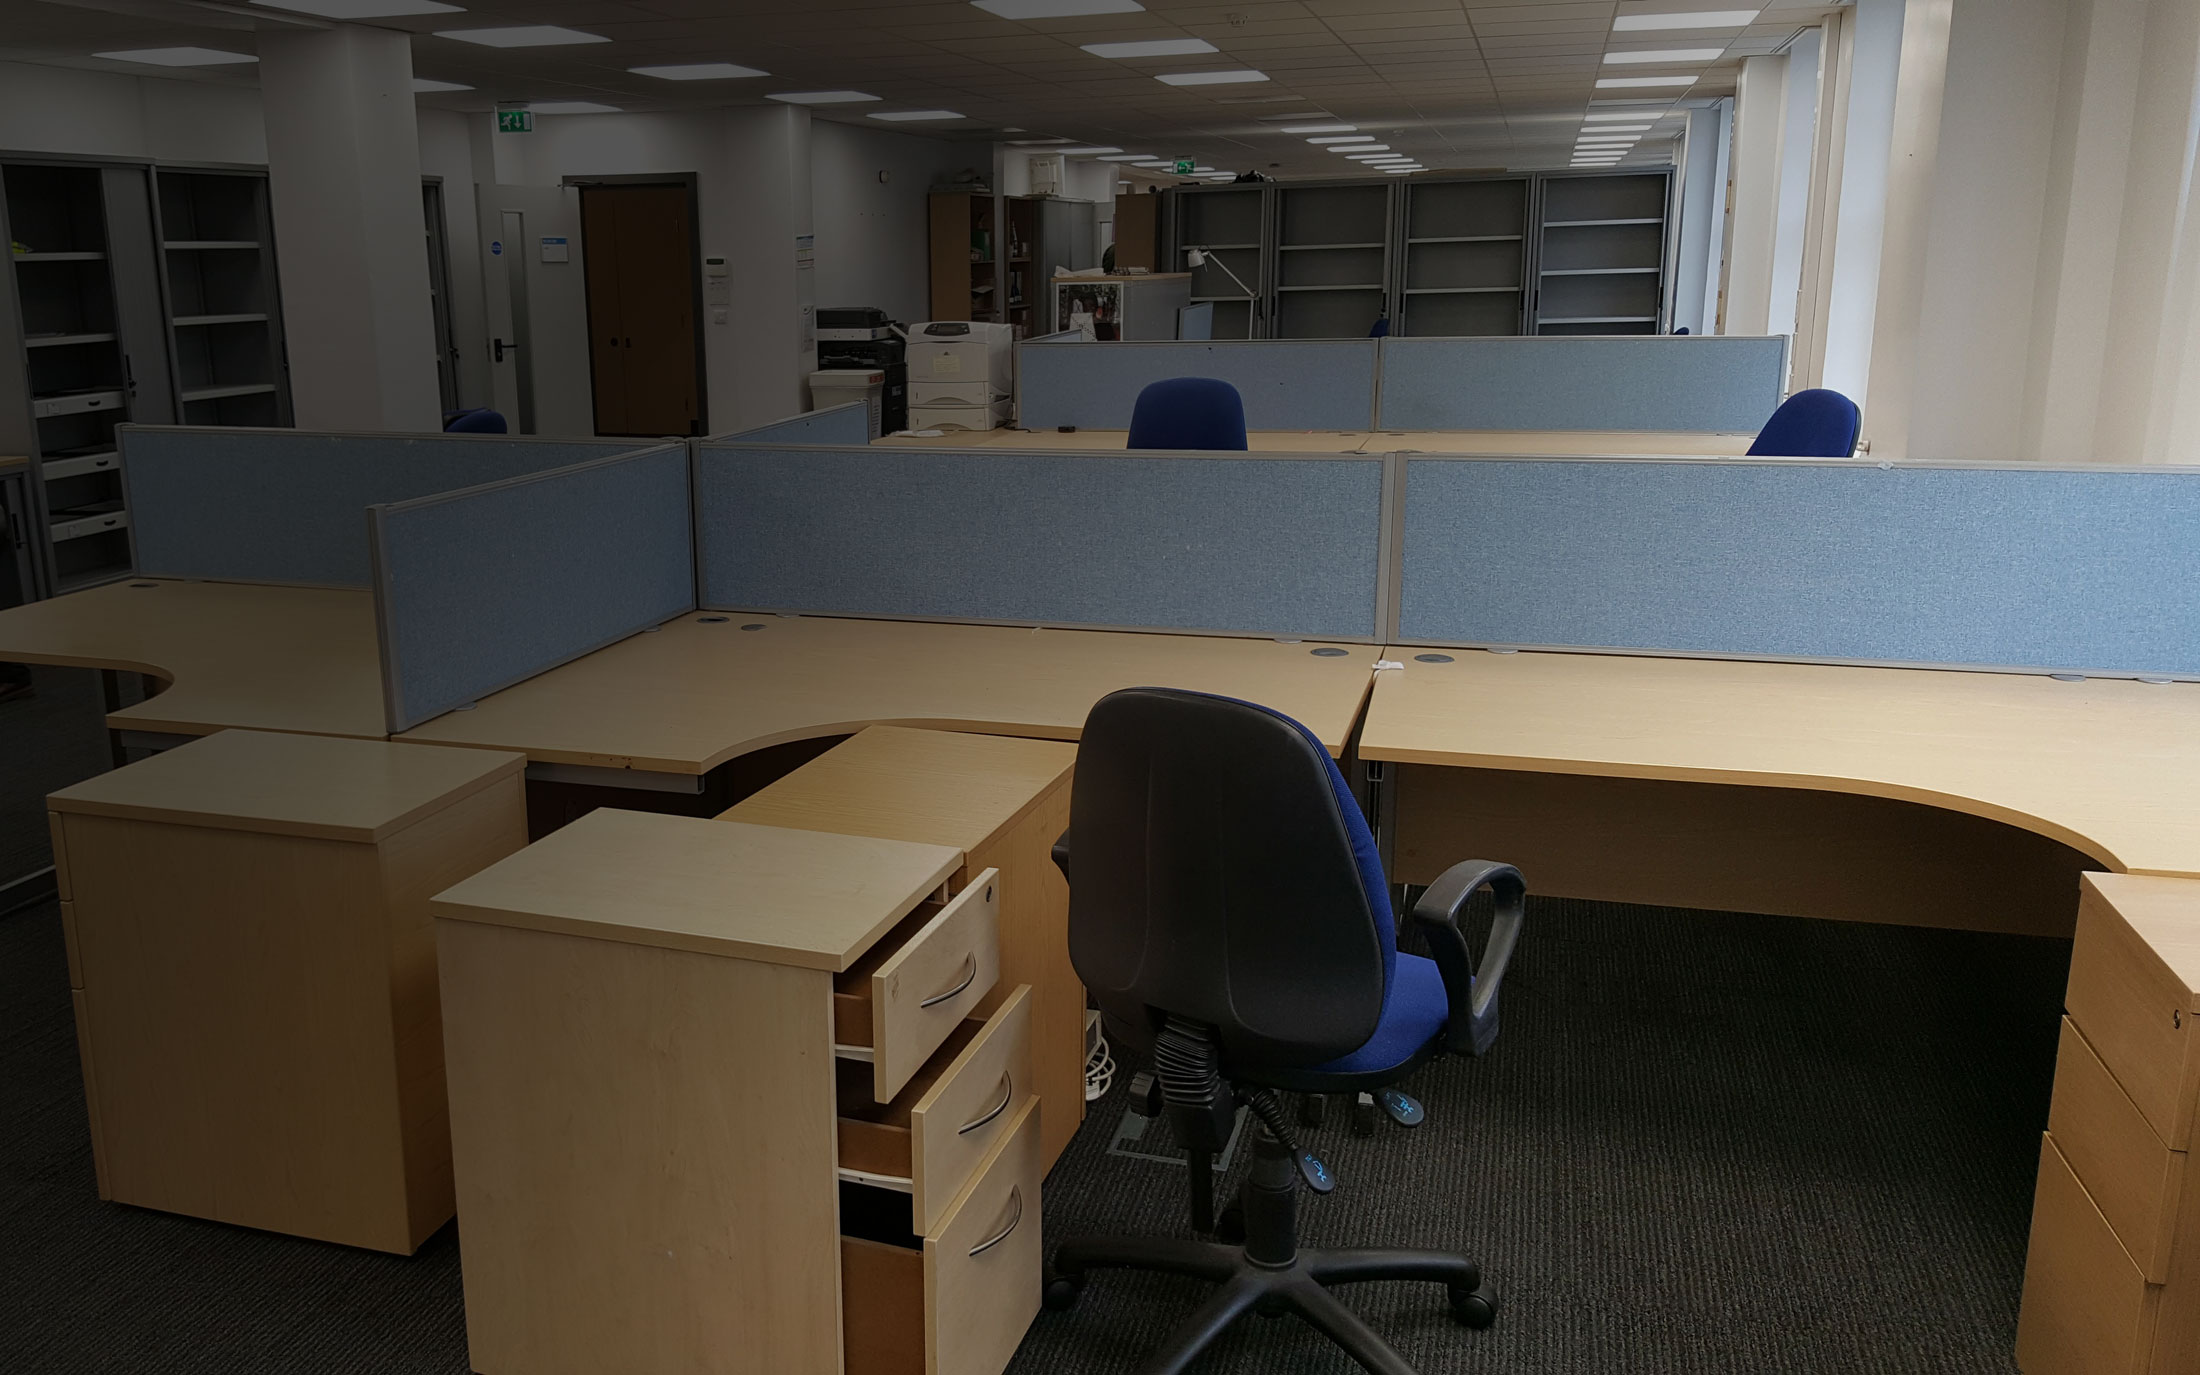 Environmentally-friendly services - recycling and reusing office chairs and desks